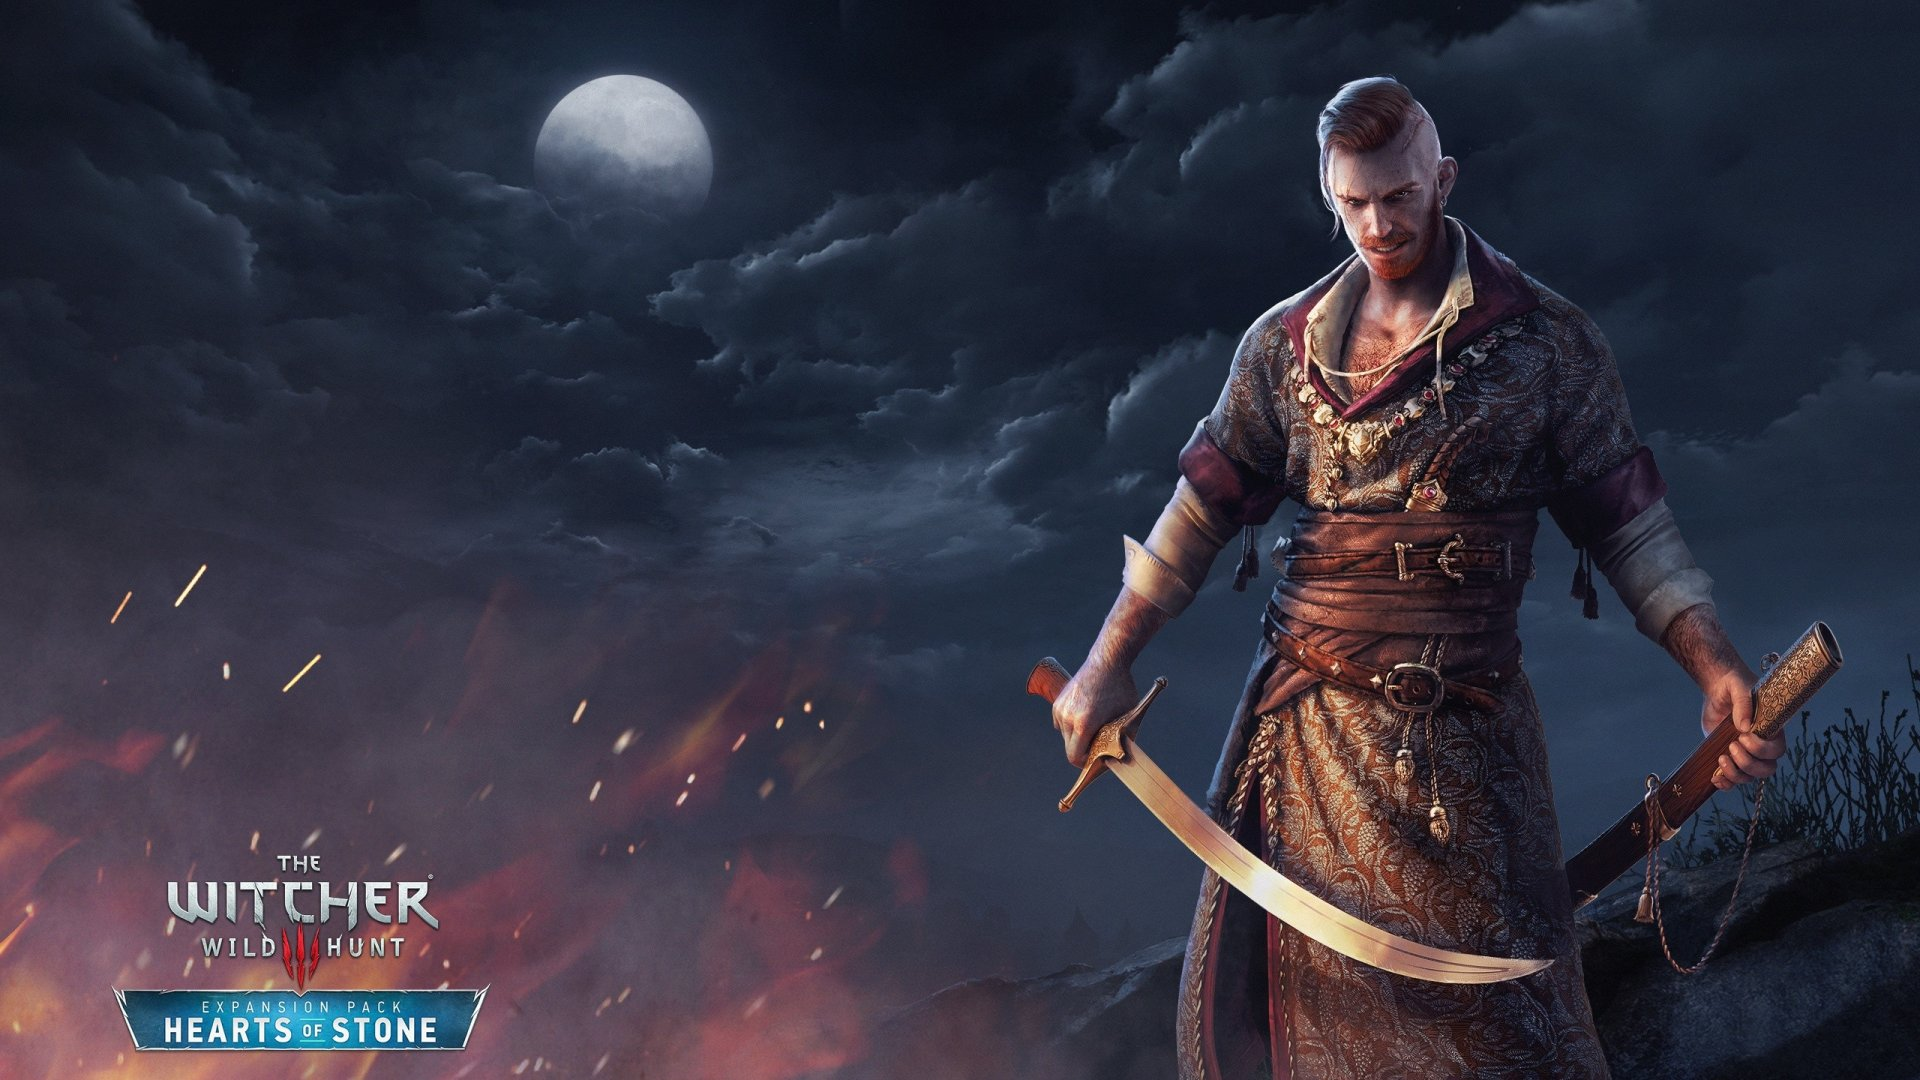 Olgierd De The Witcher 3 Fondo De Pantalla 2k Quad Hd Id2552